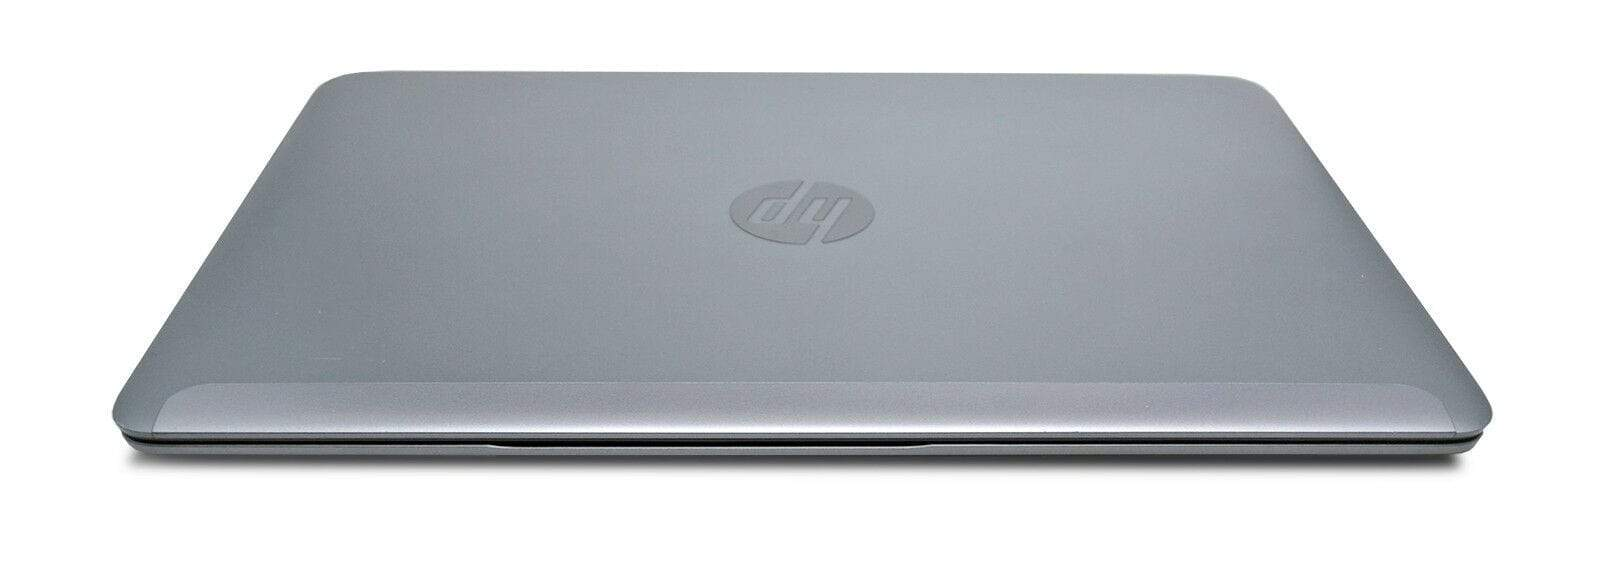 HP EliteBook 1040 G1 UltraBook: 240GB, 8GB RAM, 1.5kg, Core i5, VAT, Warranty - CruiseTech